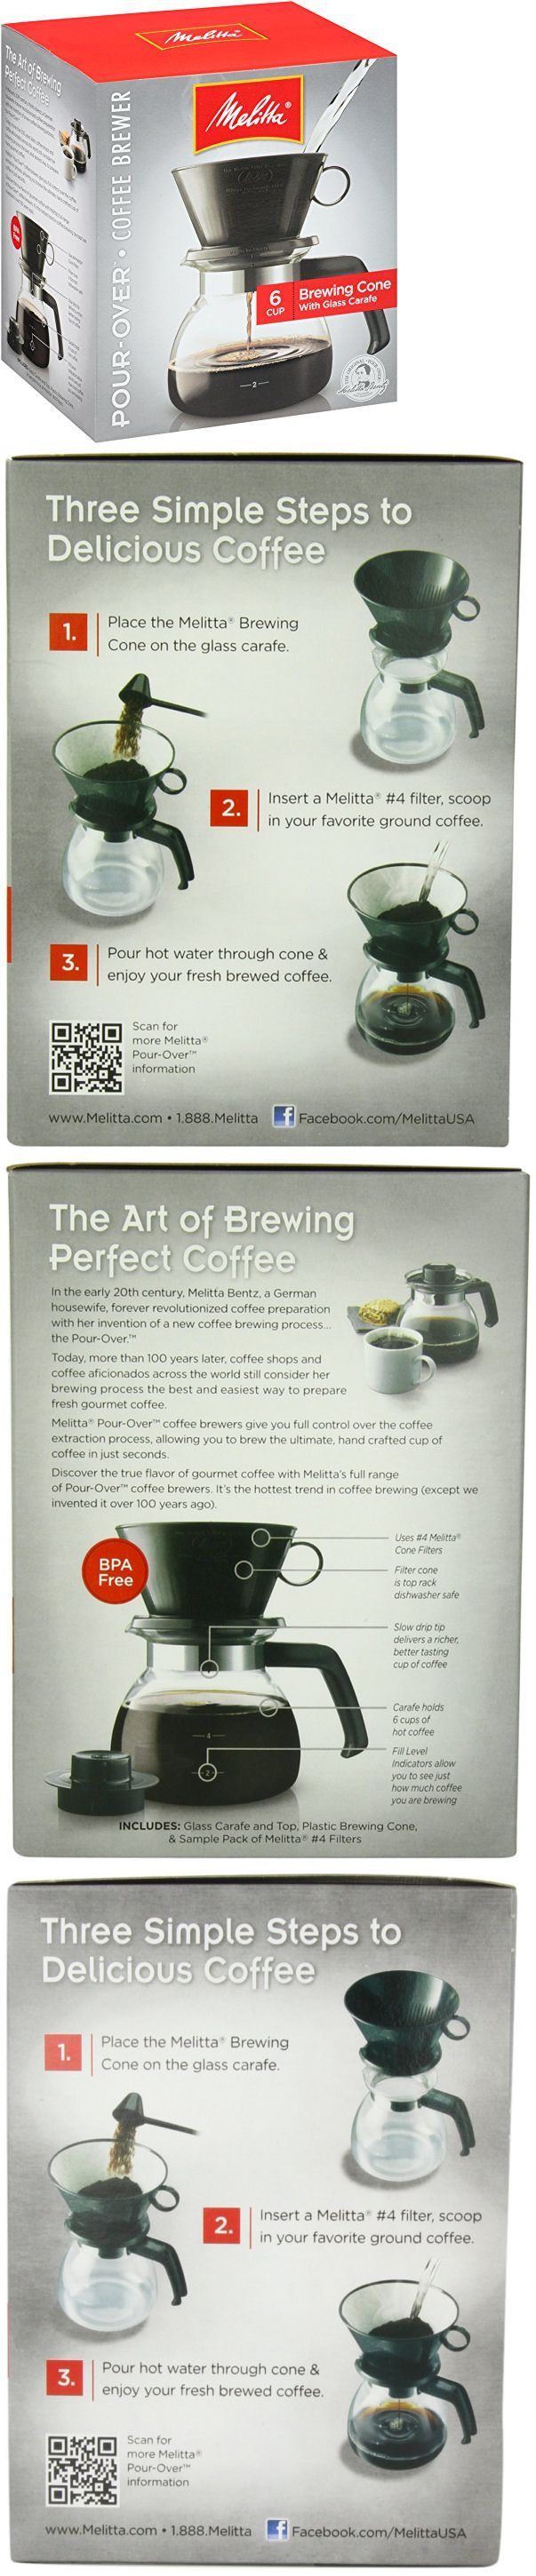 Other Coffee and Tea Makers 159902: Melitta Coffee Maker, 6 Cup Pour-Over Brewer With Glass Carafe, 1-Count -> BUY IT NOW ONLY: $54.35 on eBay!